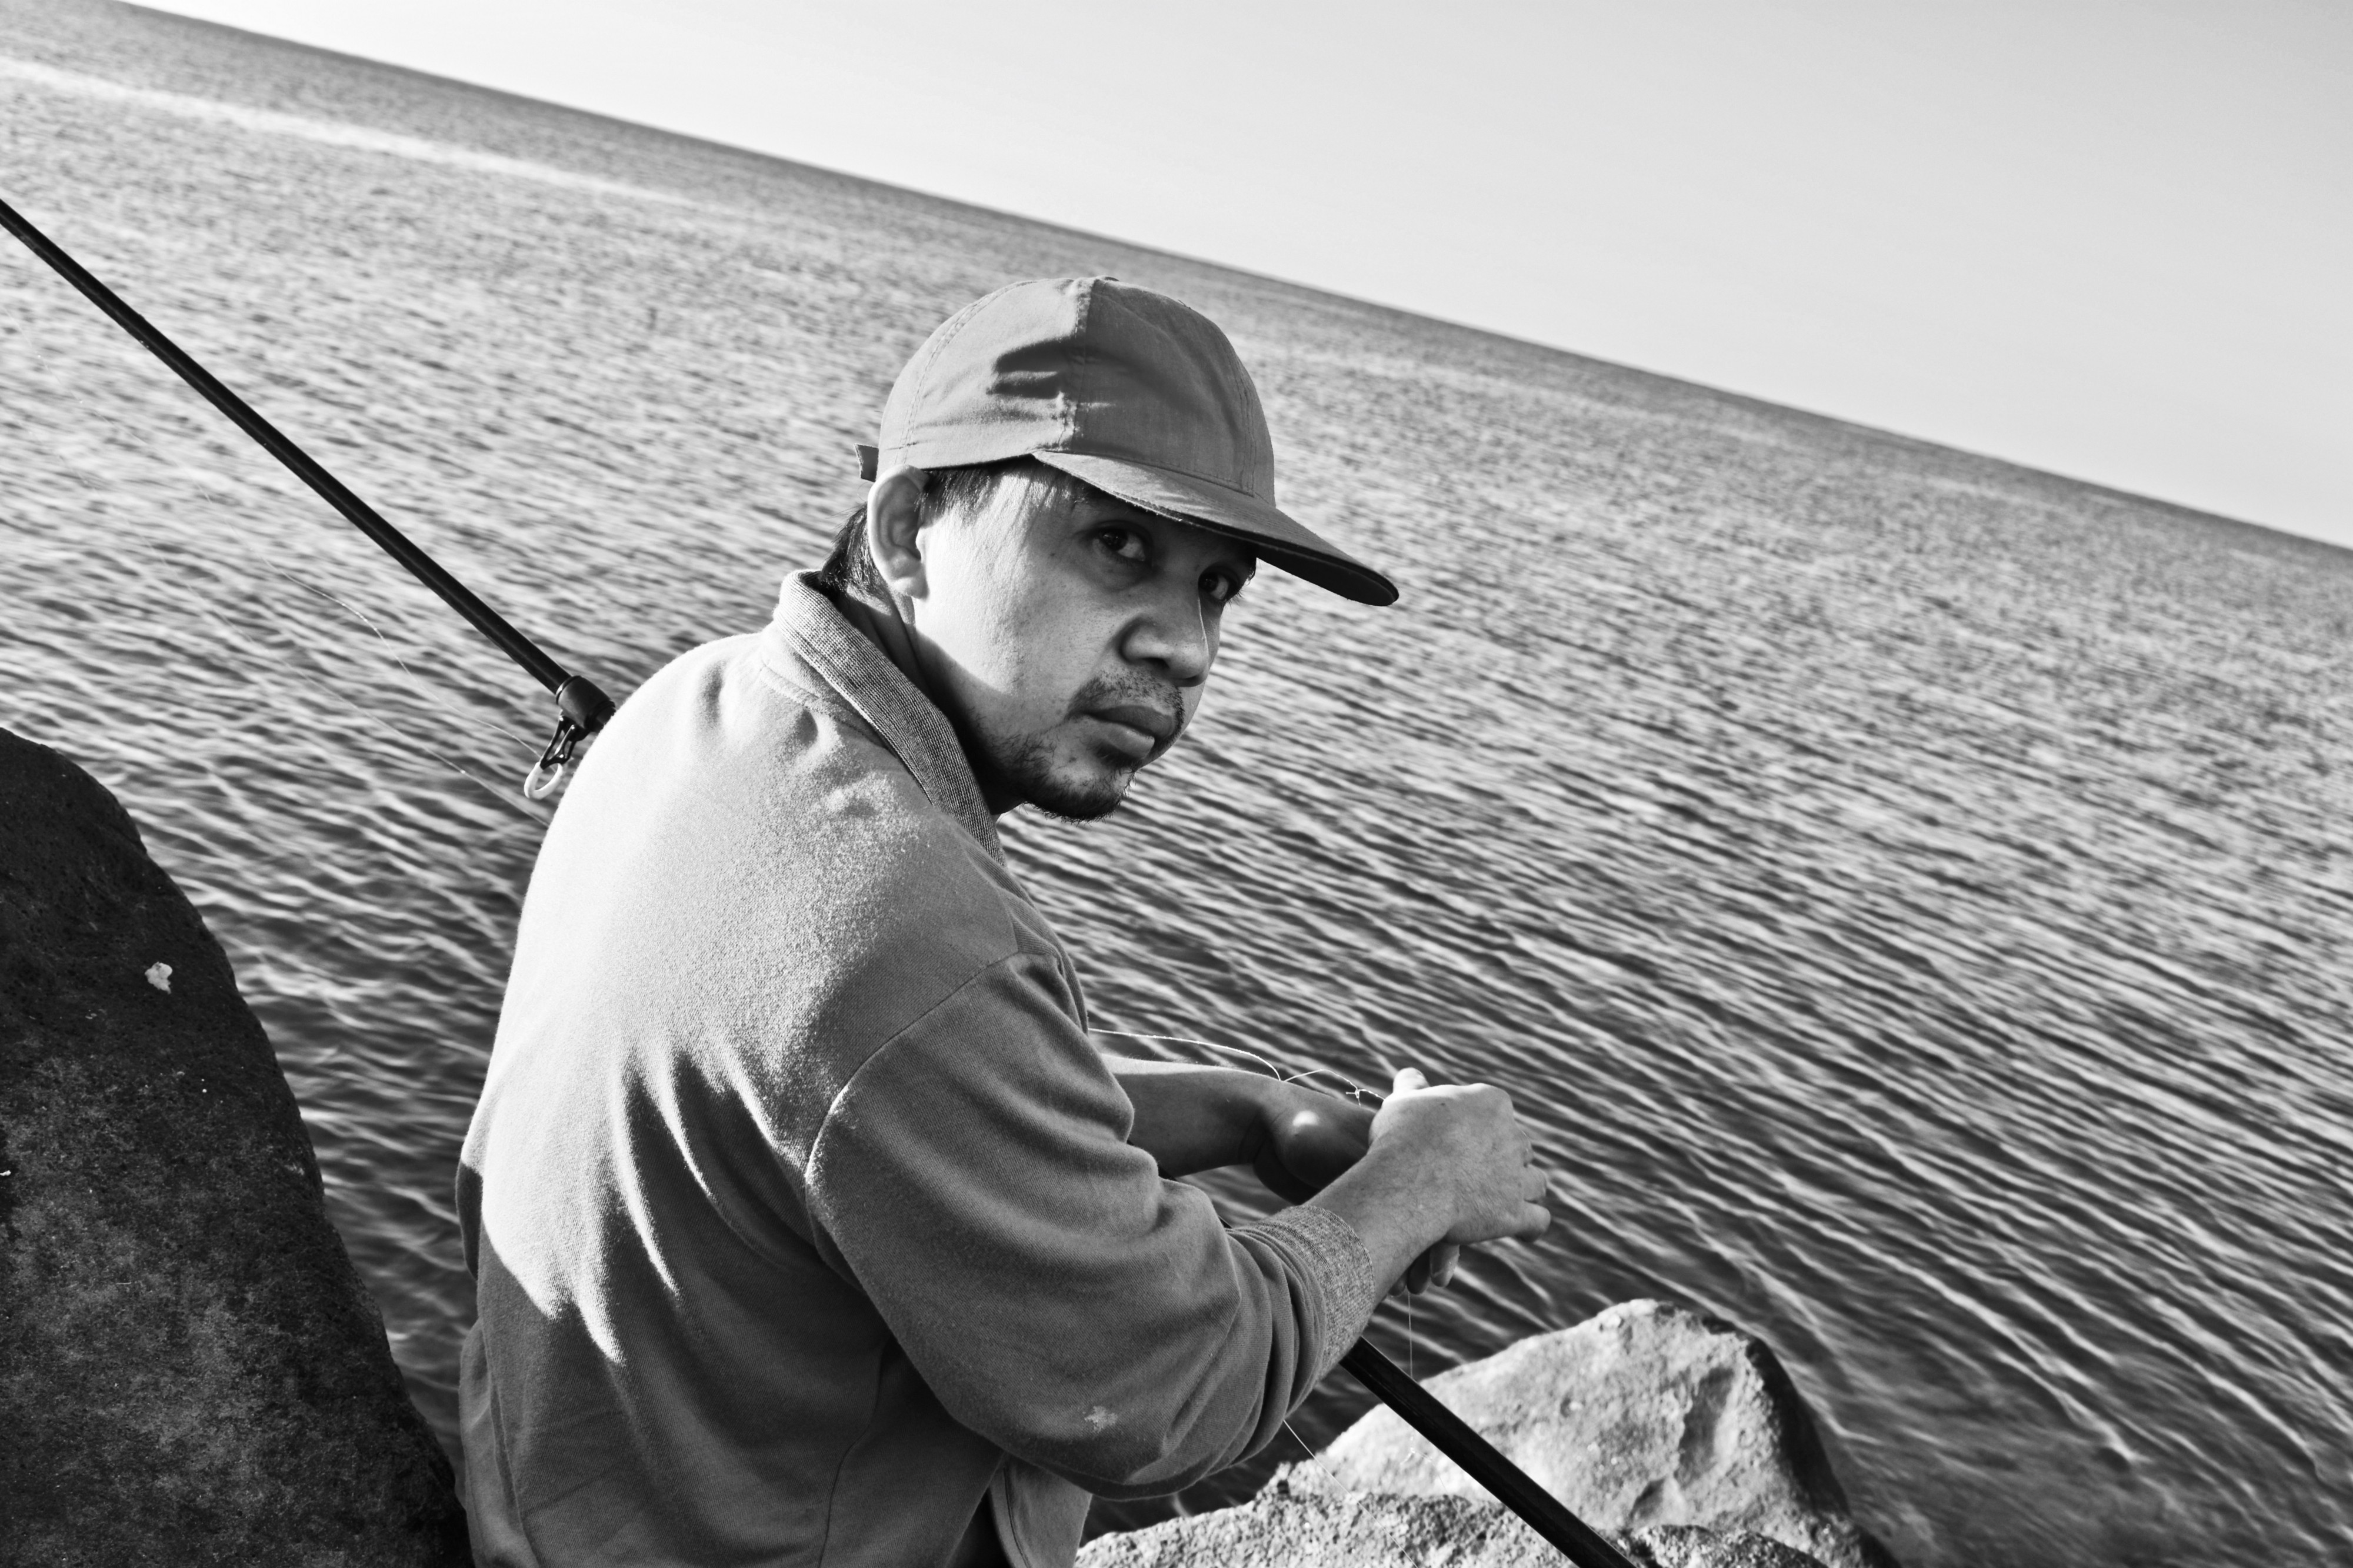 A father catching a fish in the bay